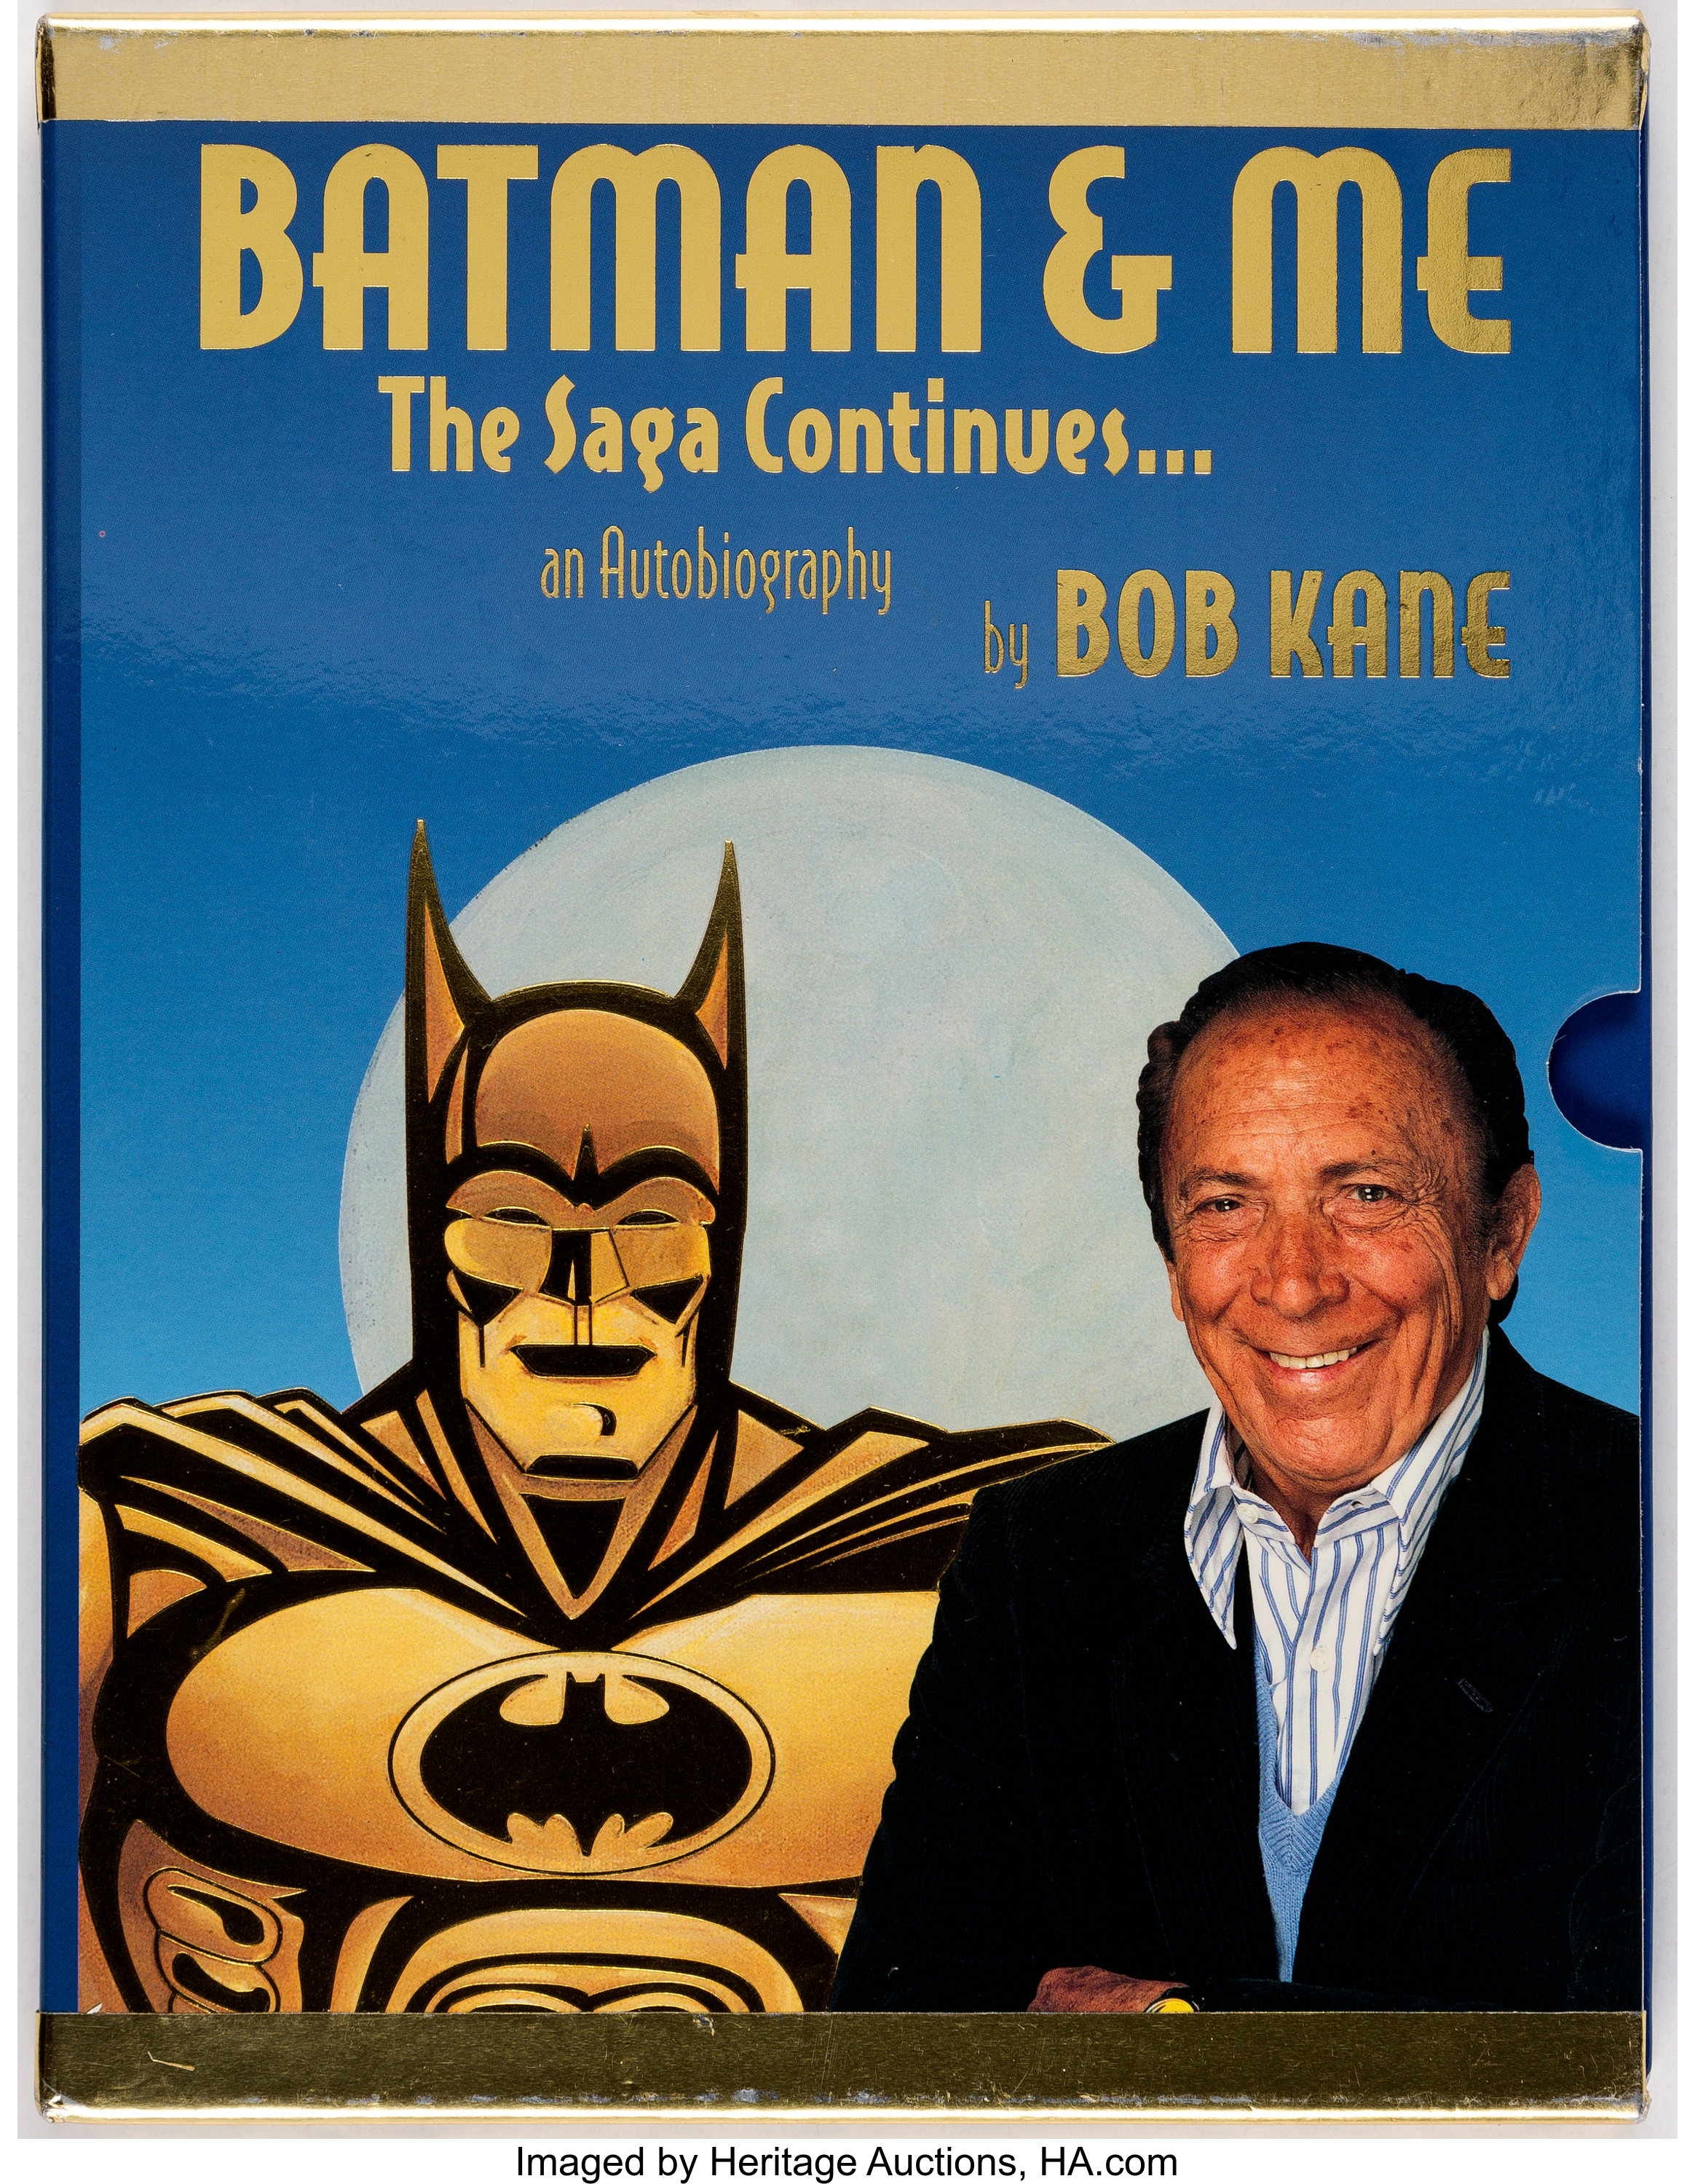 BATMAN gold sticker personally signed by BOB KANE Creator of Batman